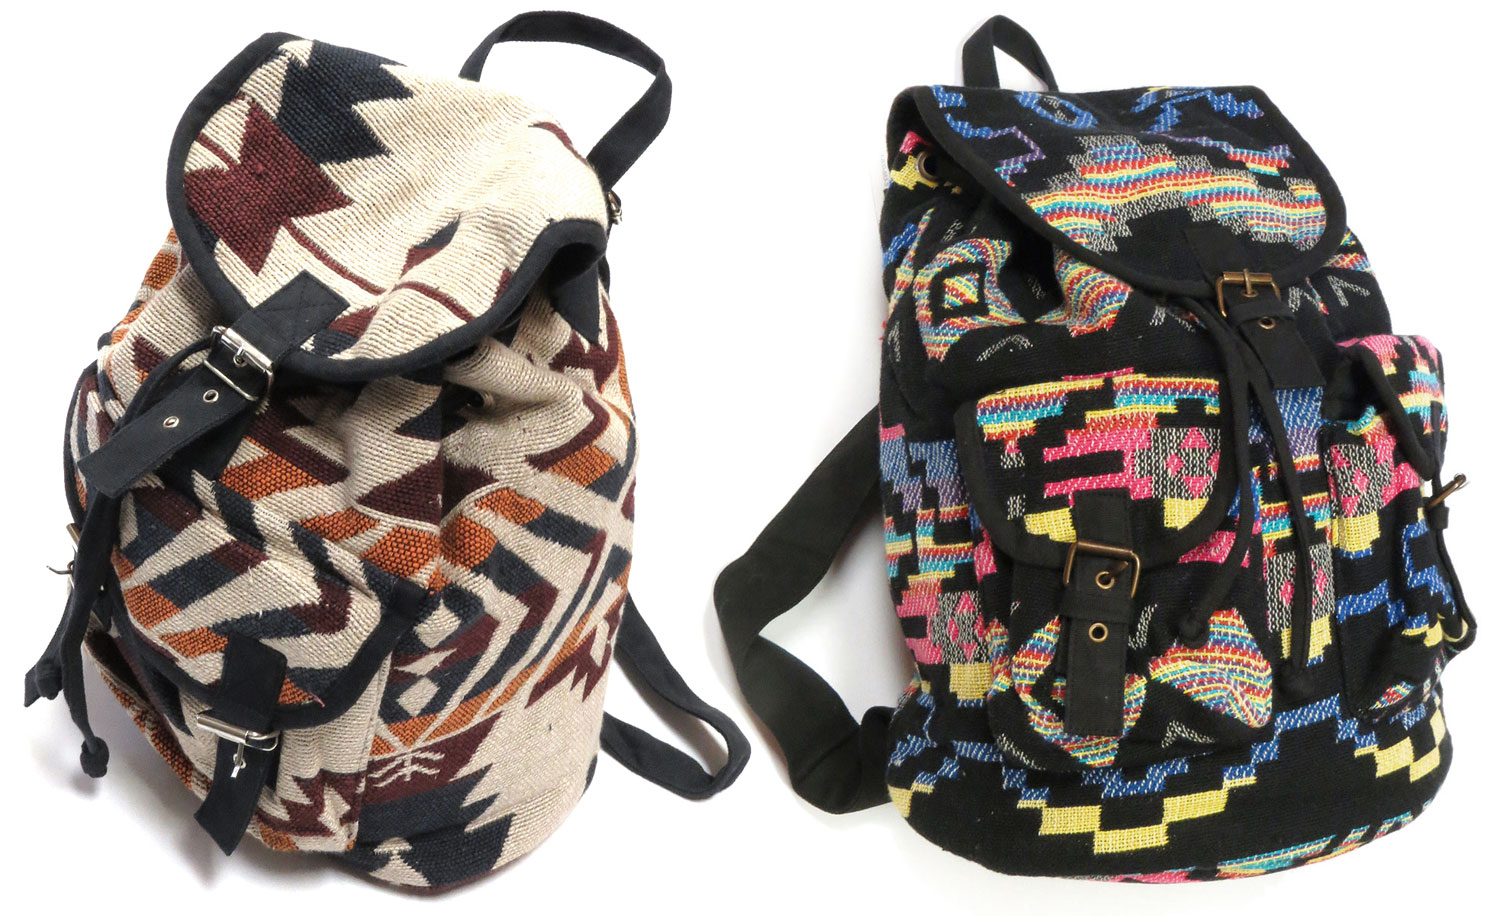 Woven Geo Backpacks